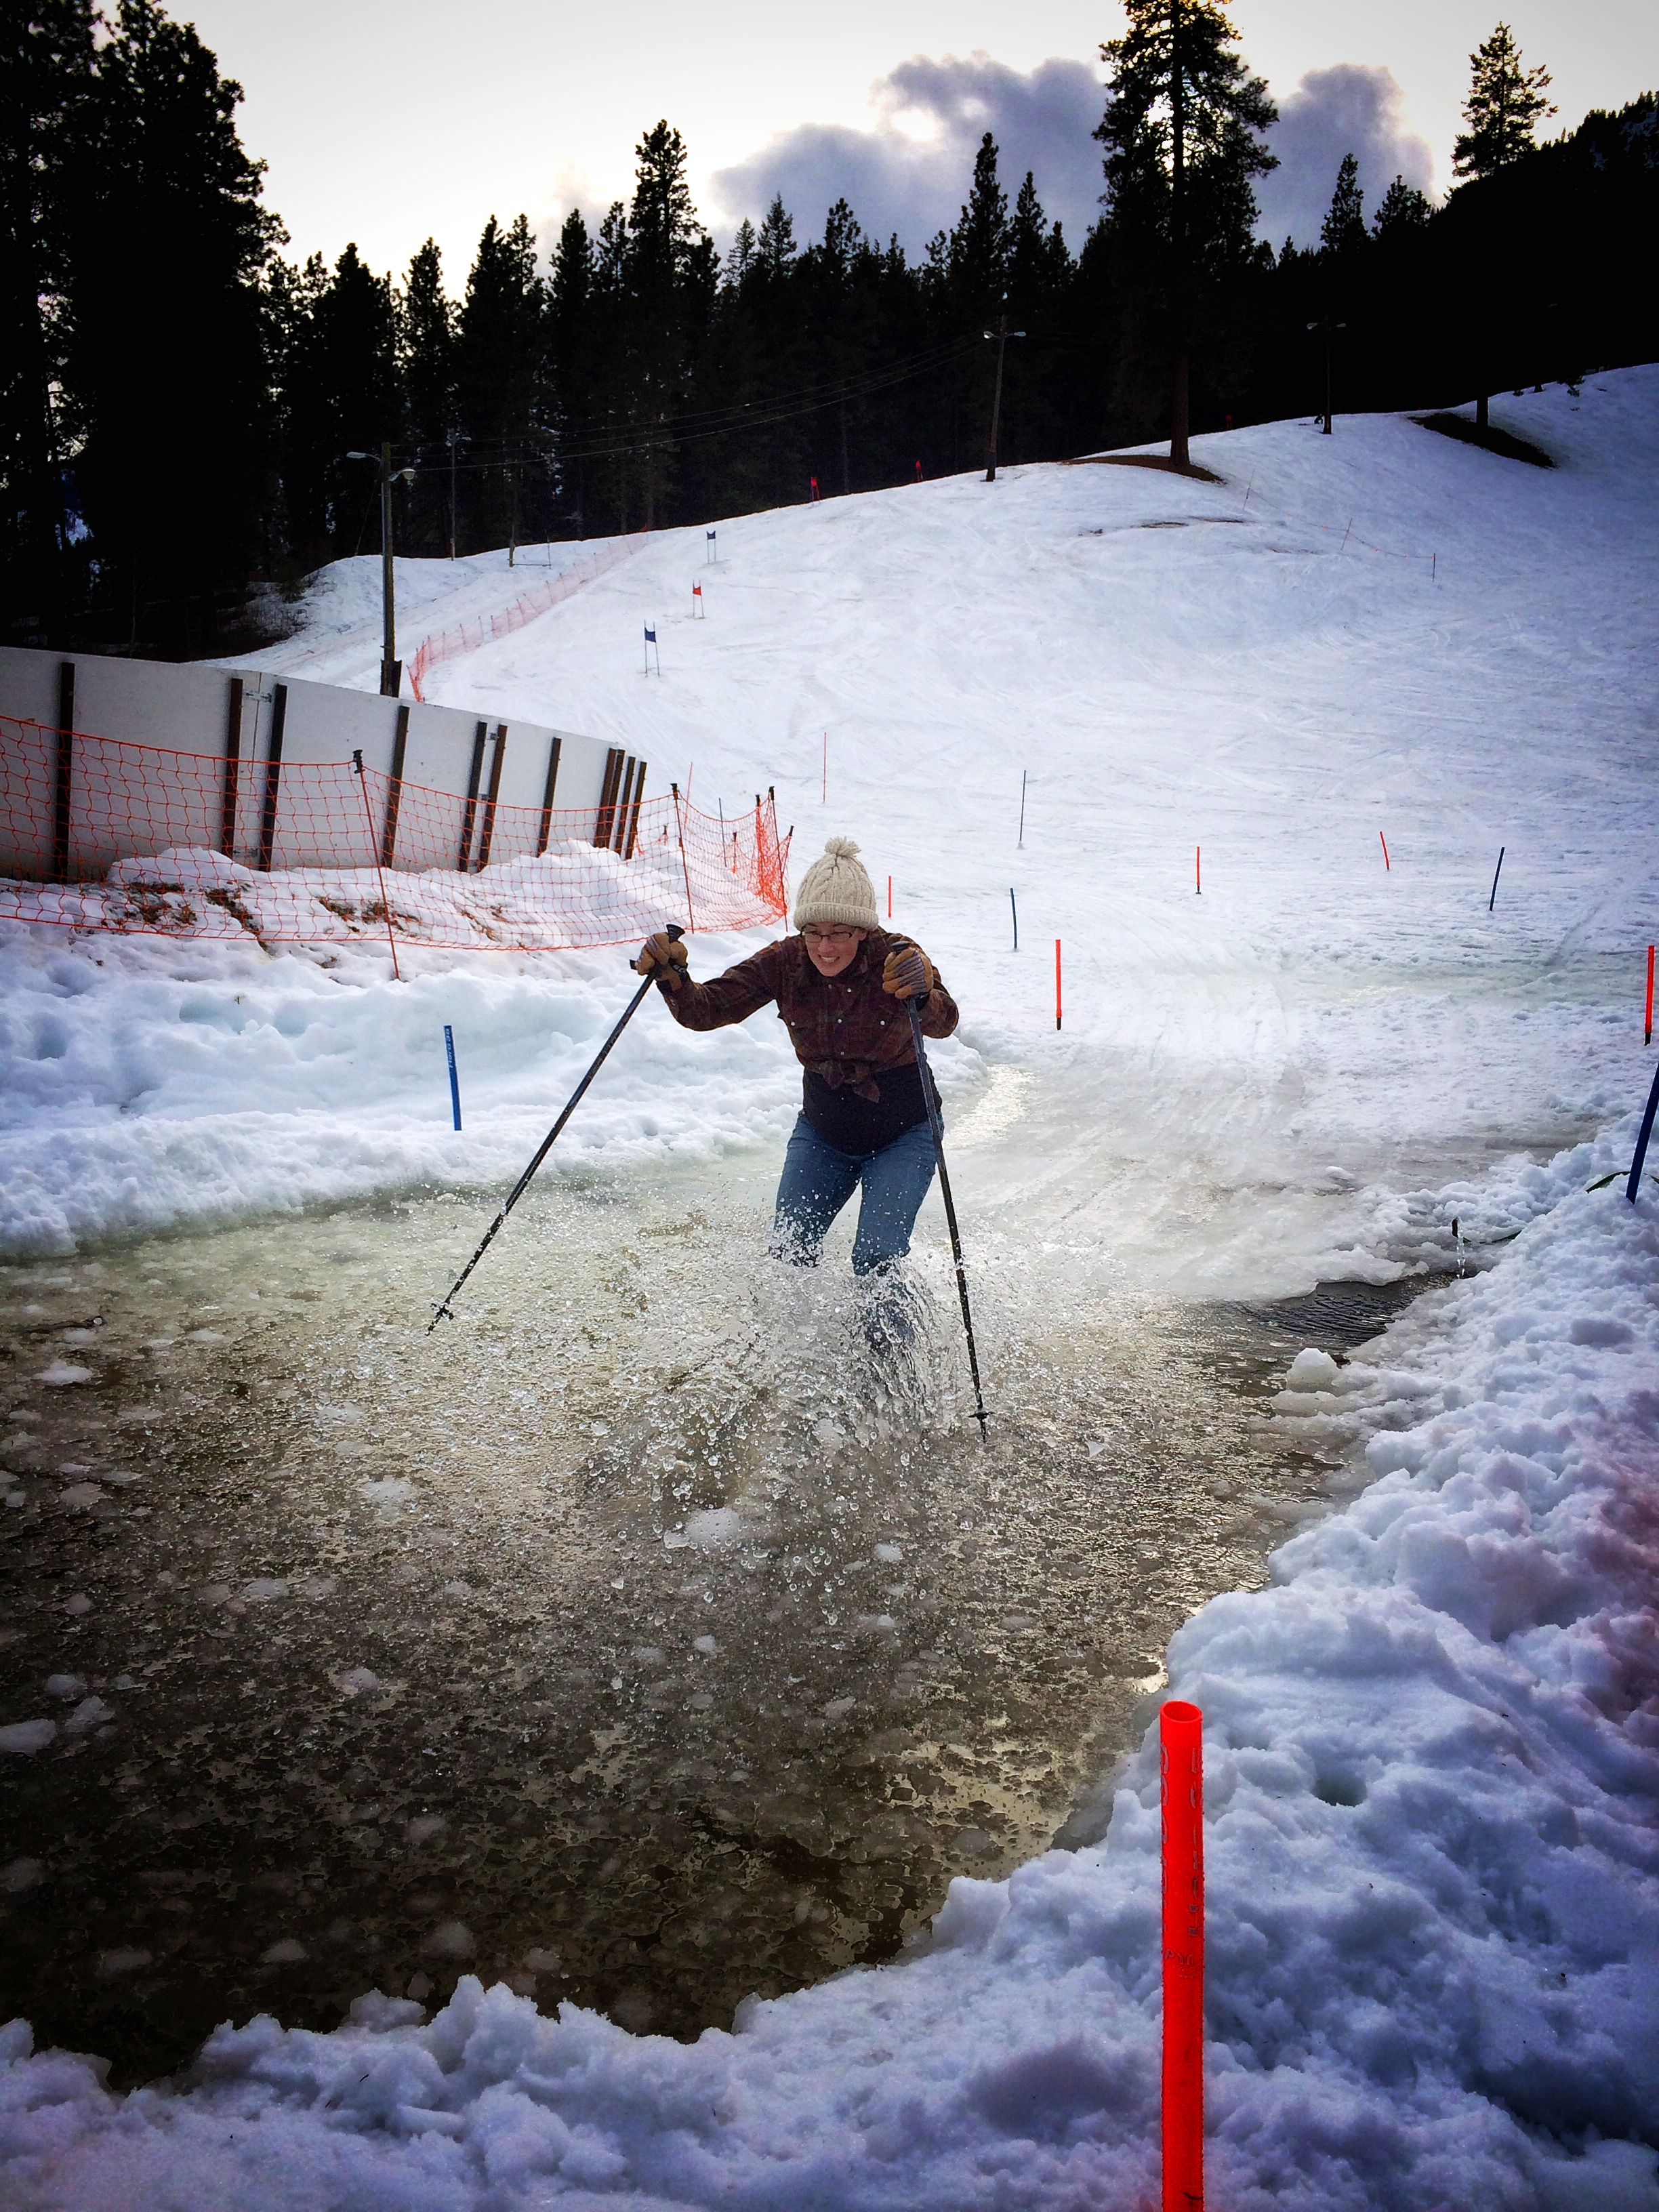 This is Jodie, 8 months pregnant, on tele skis, no biggie.